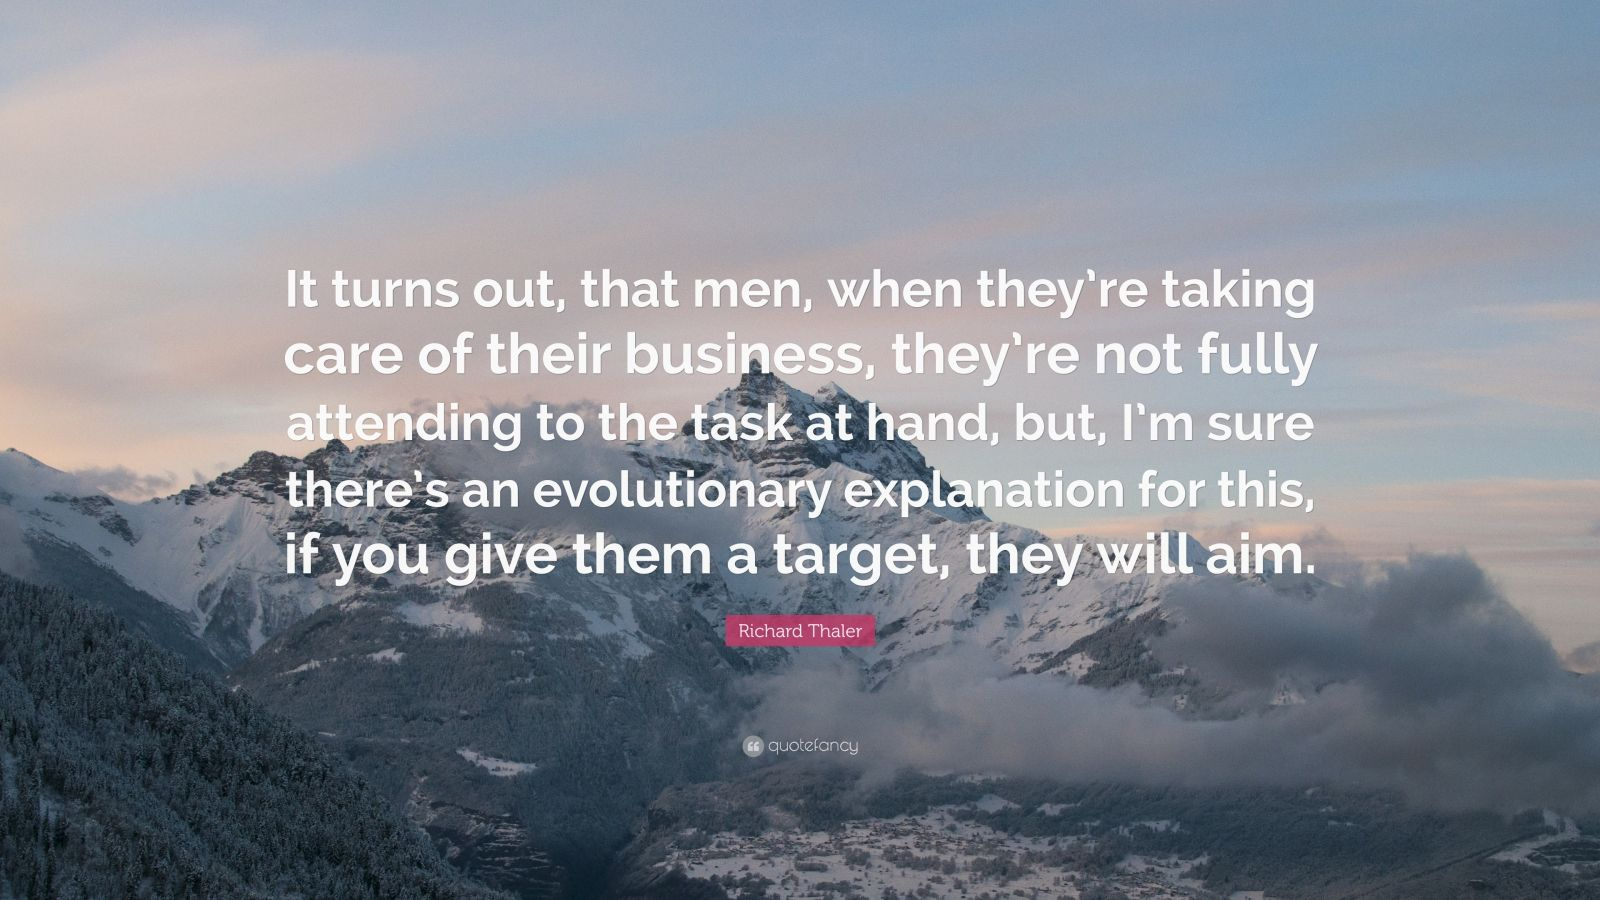 "Richard Thaler Quote: ""It turns out, that men, when they're taking care of their business, they're not fully attending to the task at hand, but, I'm sure there's an evolutionary explanation for this, if you give them a target, they will aim."""